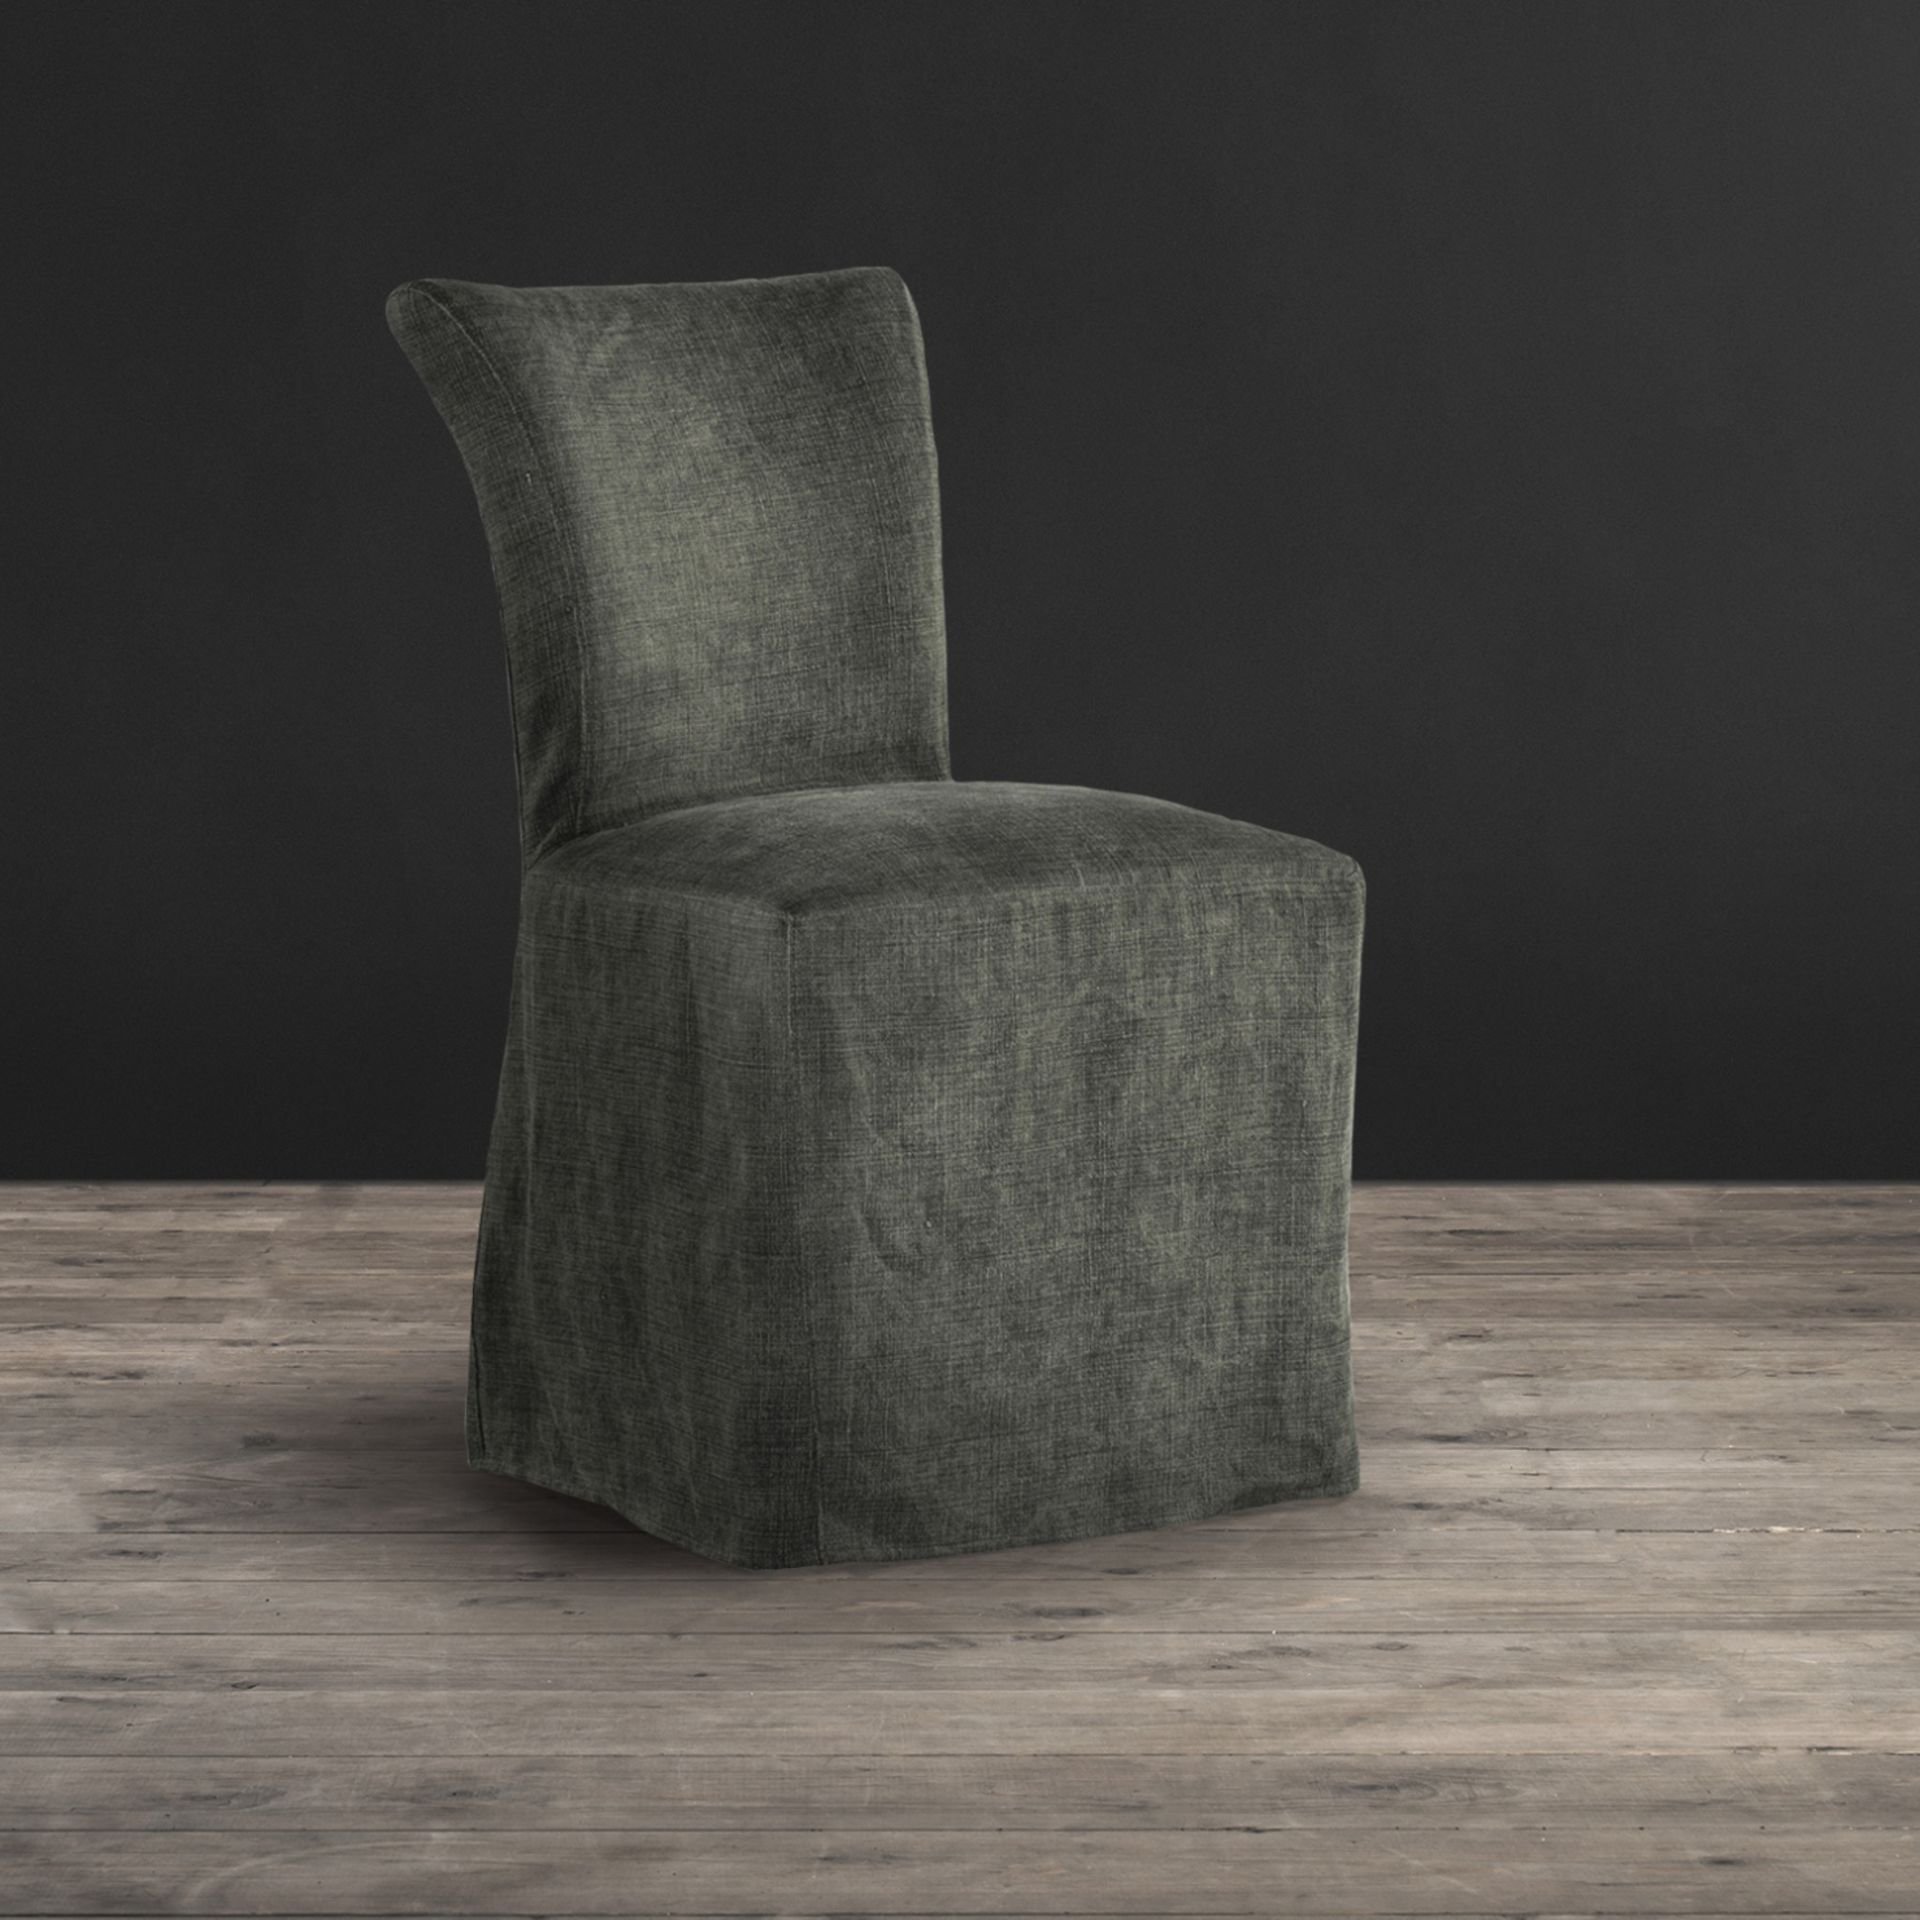 Lot 6 - Mimi Chair Scuff Linen Bone With Loose Cover We've Given Our Best-Selling Mimi Dining Chair A